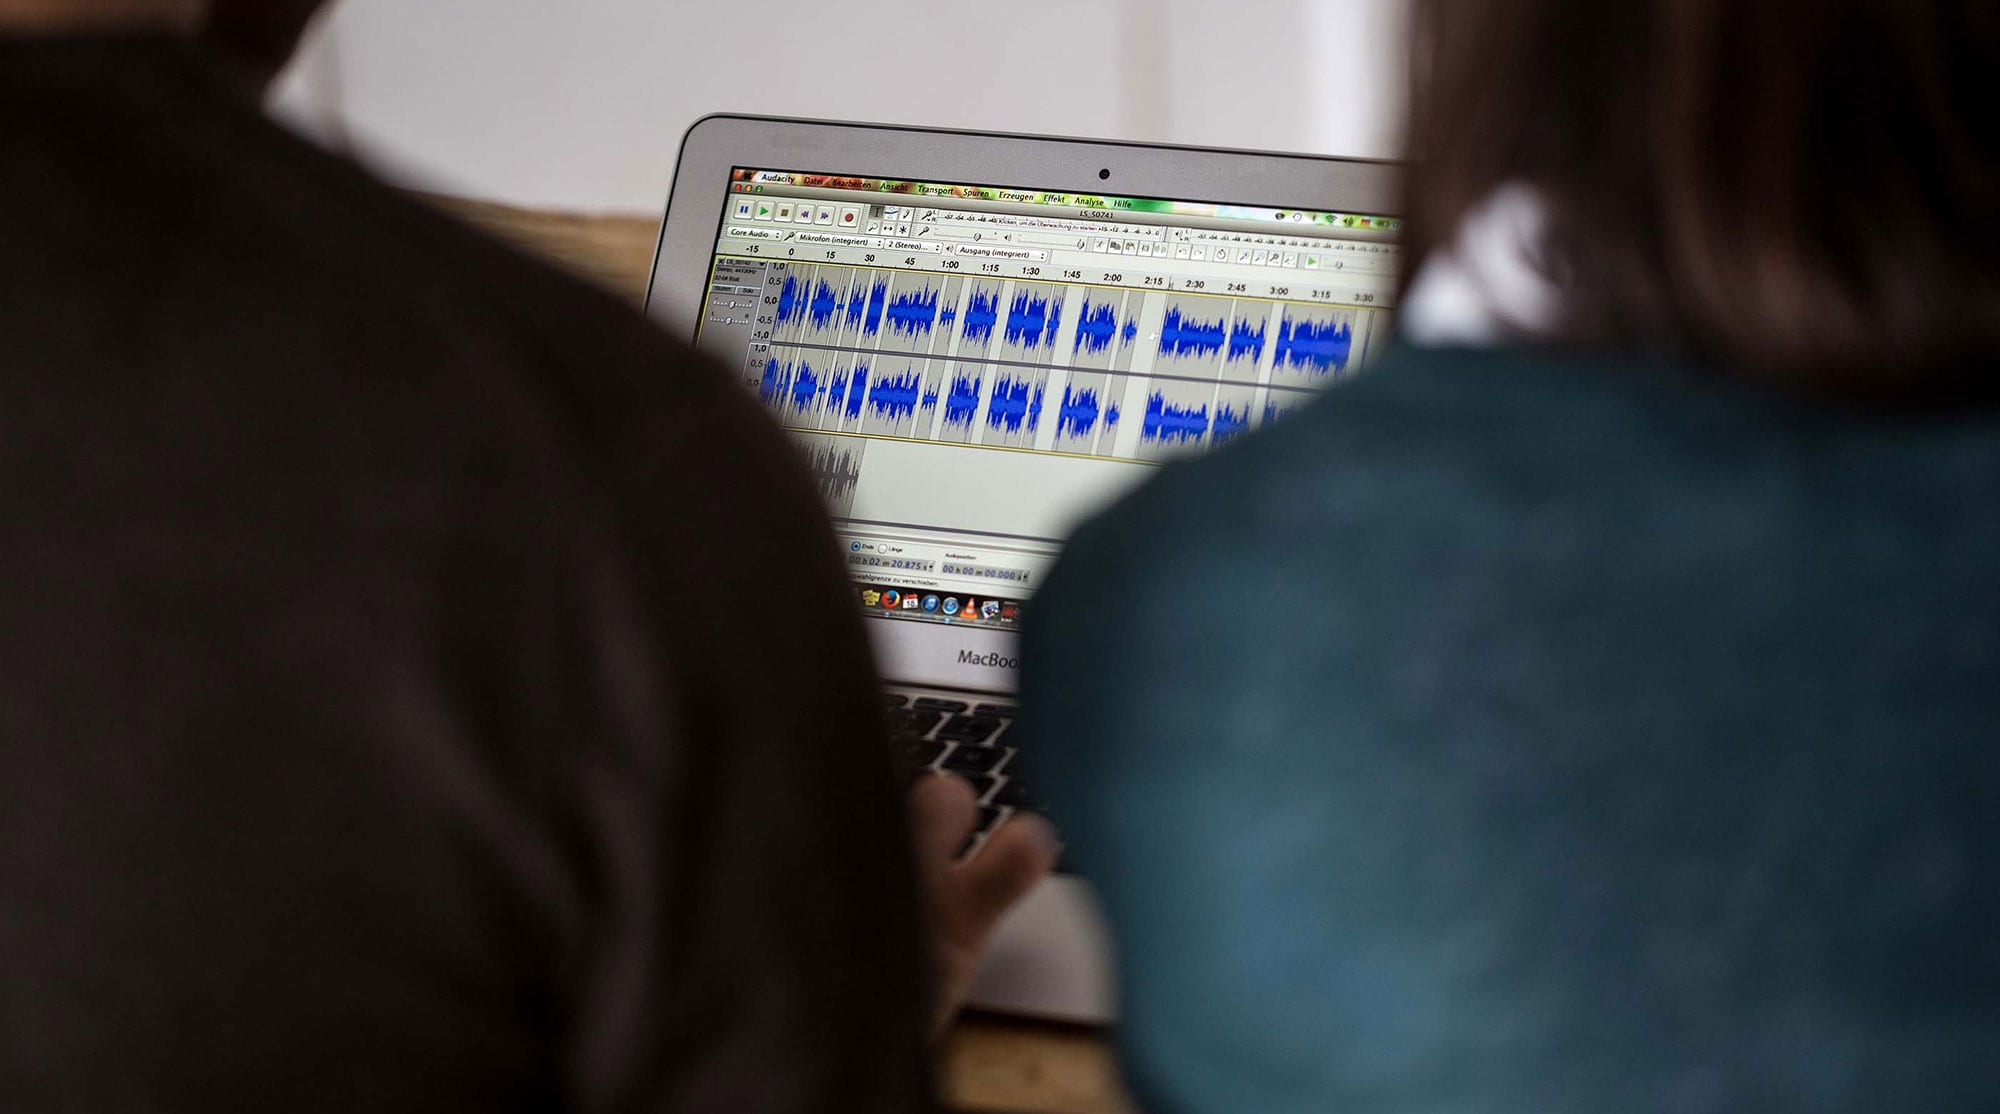 Sound designer optimizes audio files of interviews